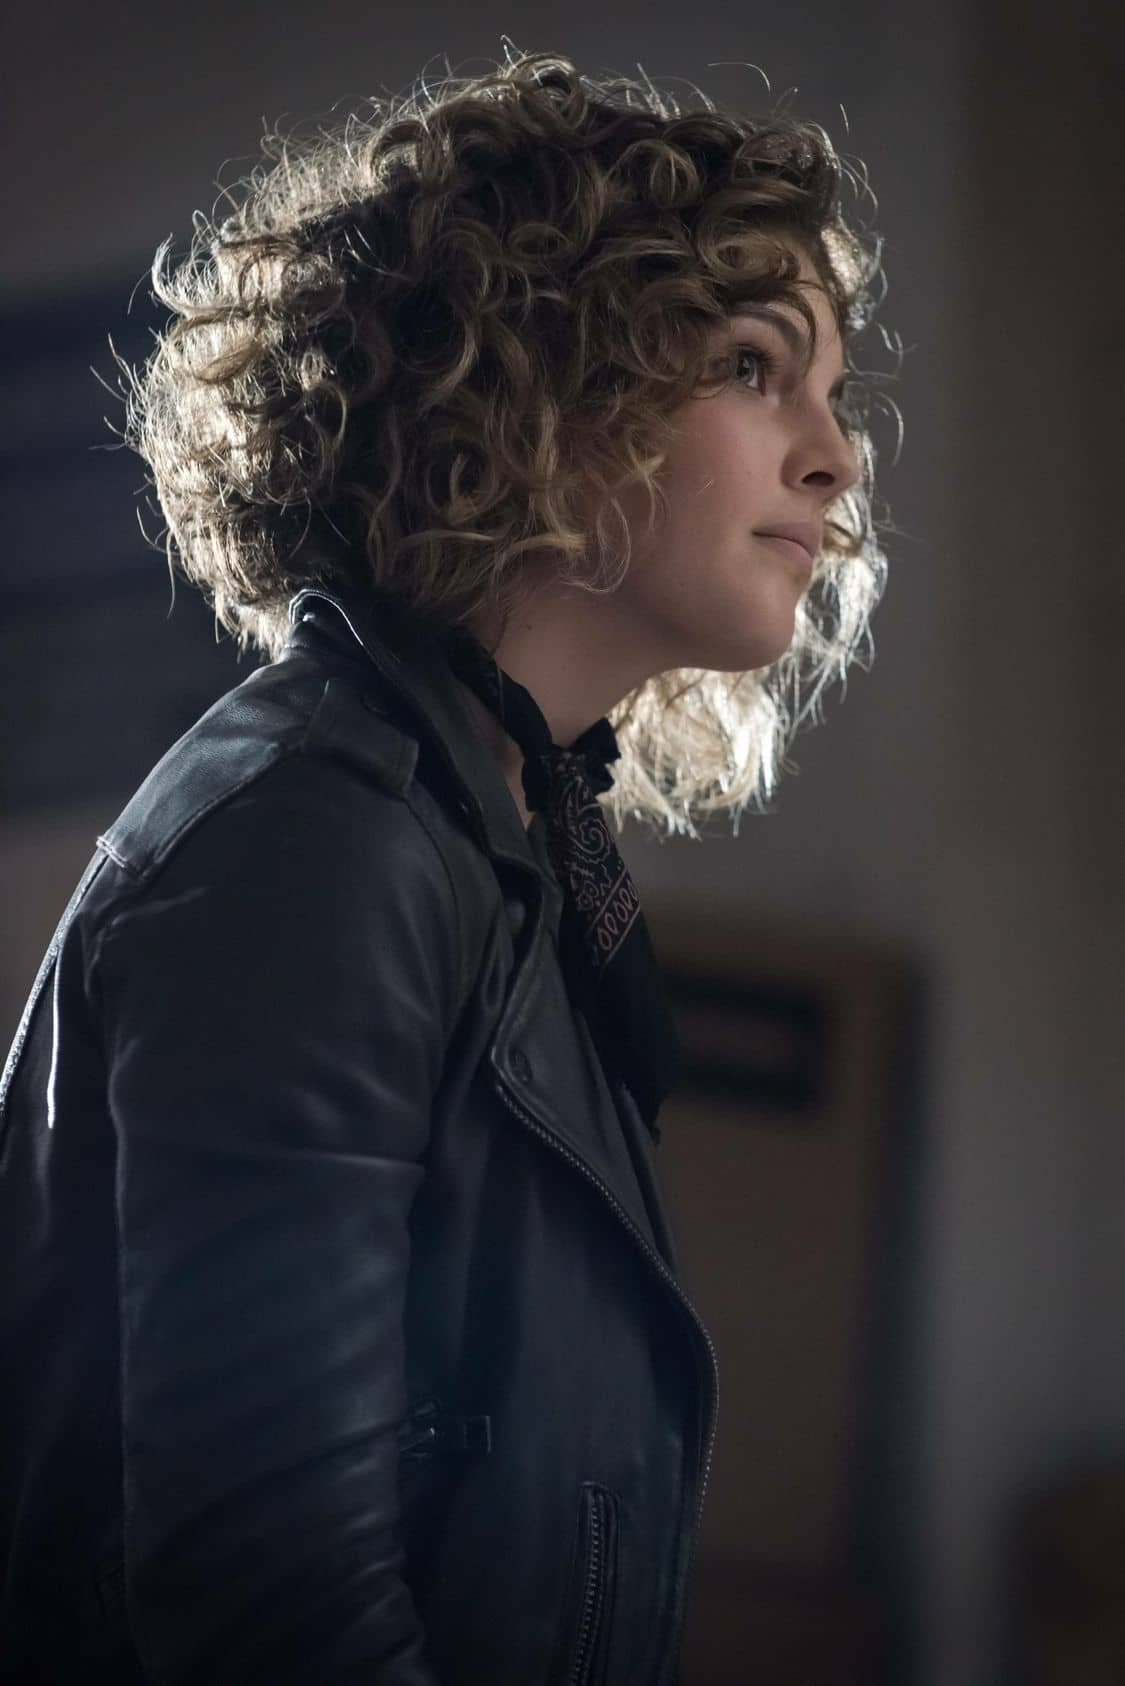 """GOTHAM: Camren Bicondova in the """"Mad City: Better to Reign in Hell…"""" season premiere episode of GOTHAM airing airing Monday, Sept. 19 (8:00-9:01 PM ET/PT) on FOX. ©2015 Fox Broadcasting Co. Cr: Jeff Neumann/FOX."""